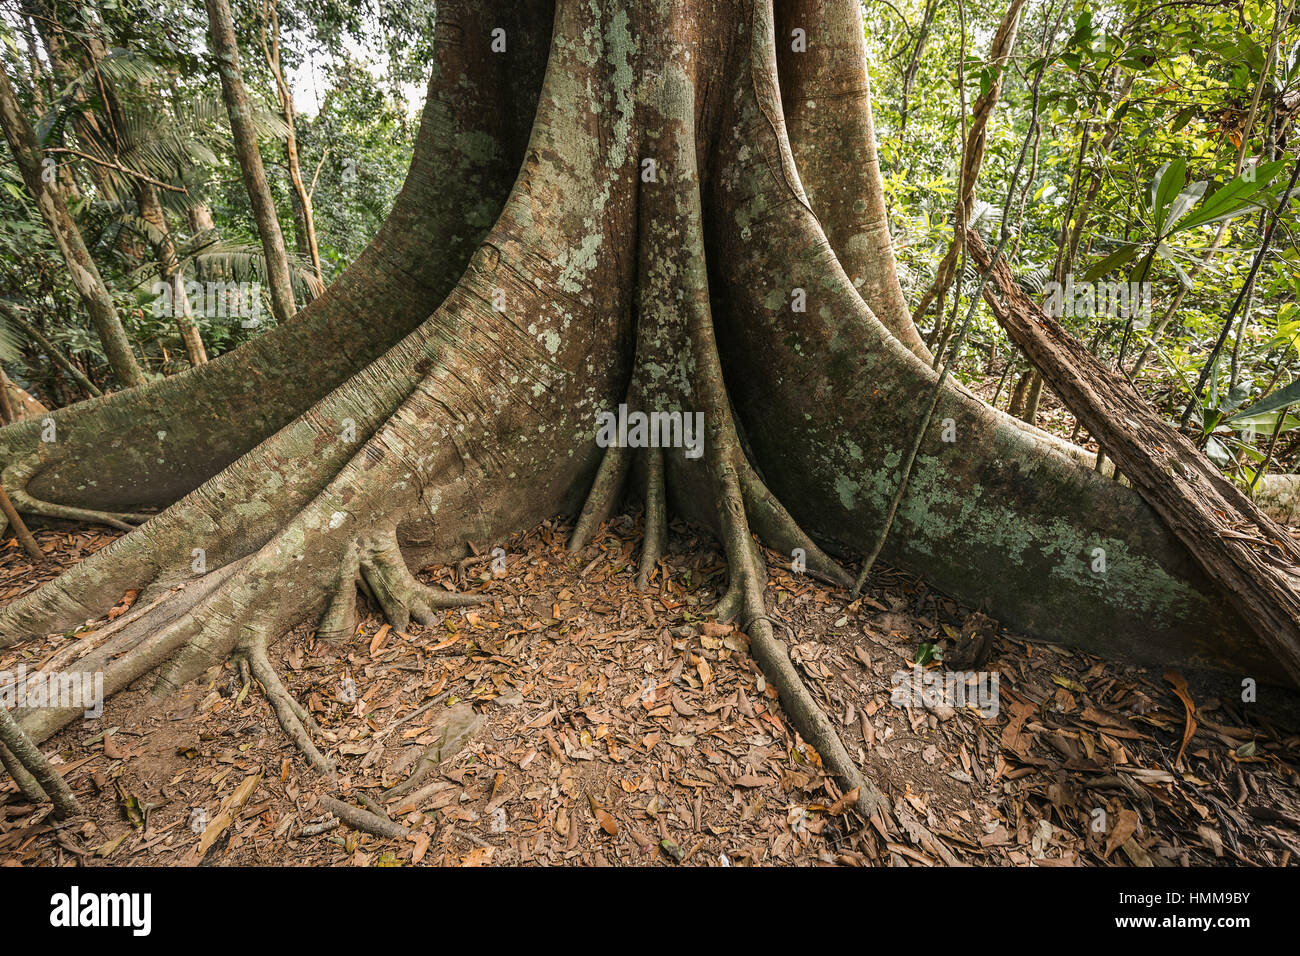 Base Of Old Big Tree In Tropical Evergreen Forest Which Having Big Stock Photo Alamy ··· china cheap production evergreen tropical artificial leaves bulk. https www alamy com stock photo base of old big tree in tropical evergreen forest which having big 133212127 html